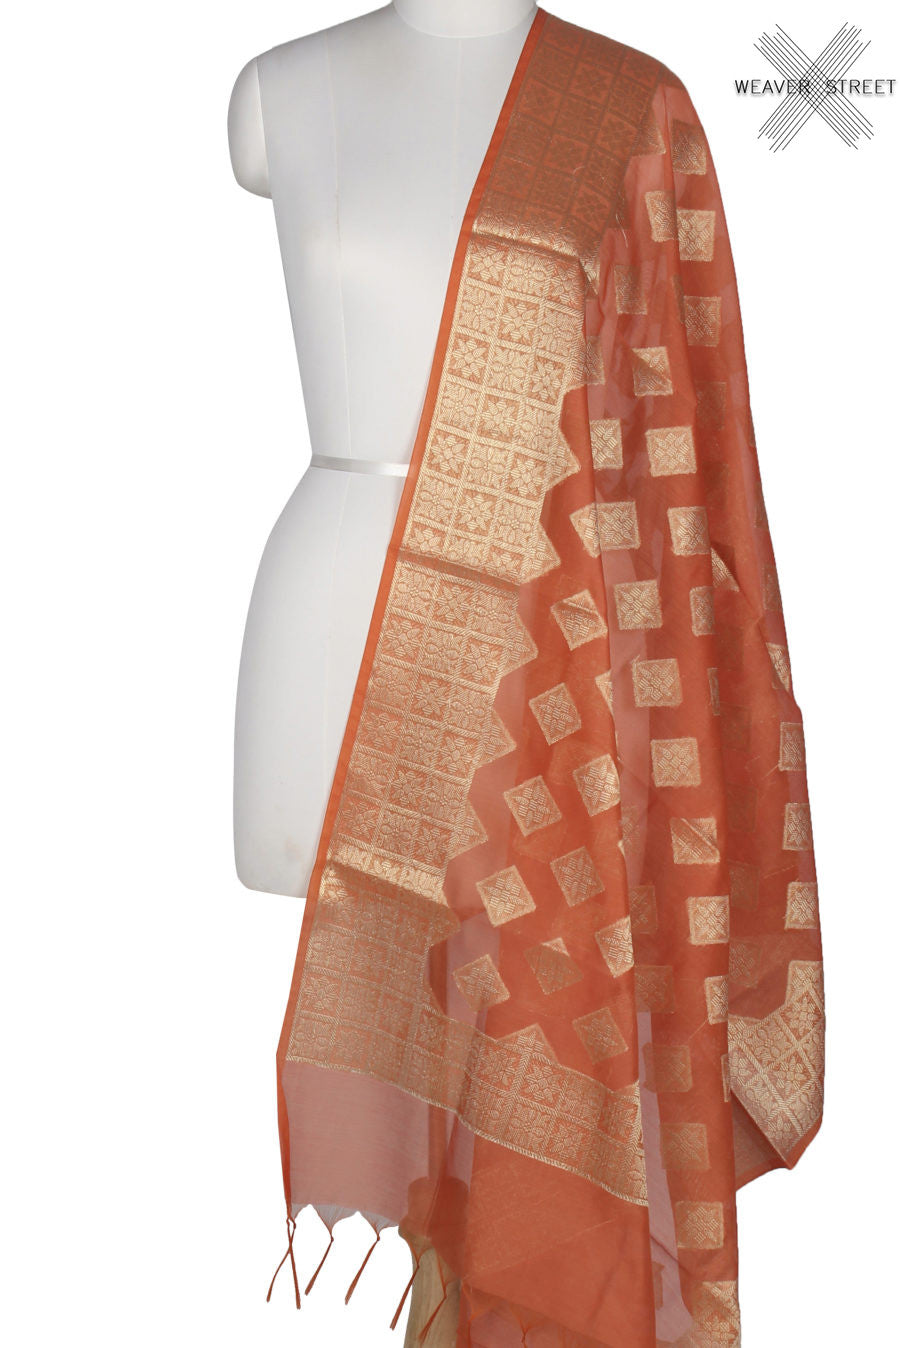 Orange Art Silk Cotton Banarasi Dupatta with diamond shape motifs (1) Main